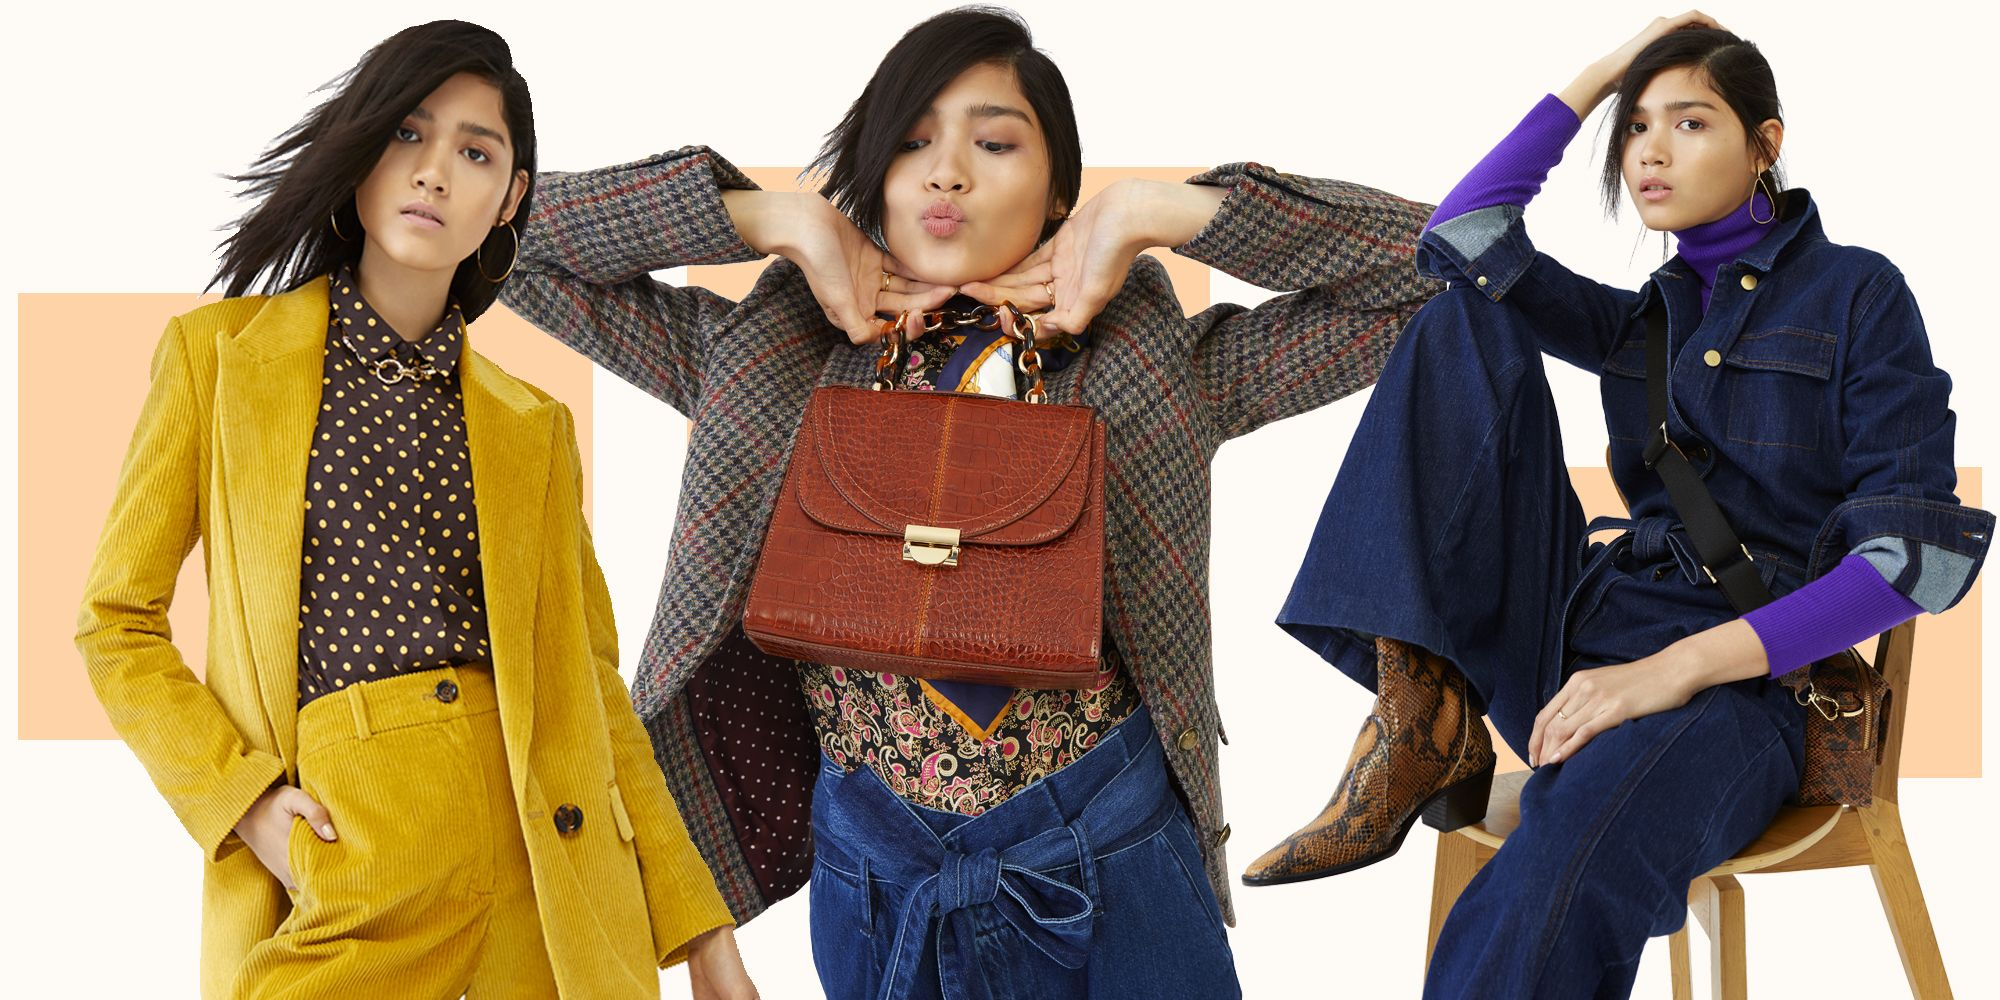 Best 70s fashion: An Editor's guide to reinventing the decade's top trends